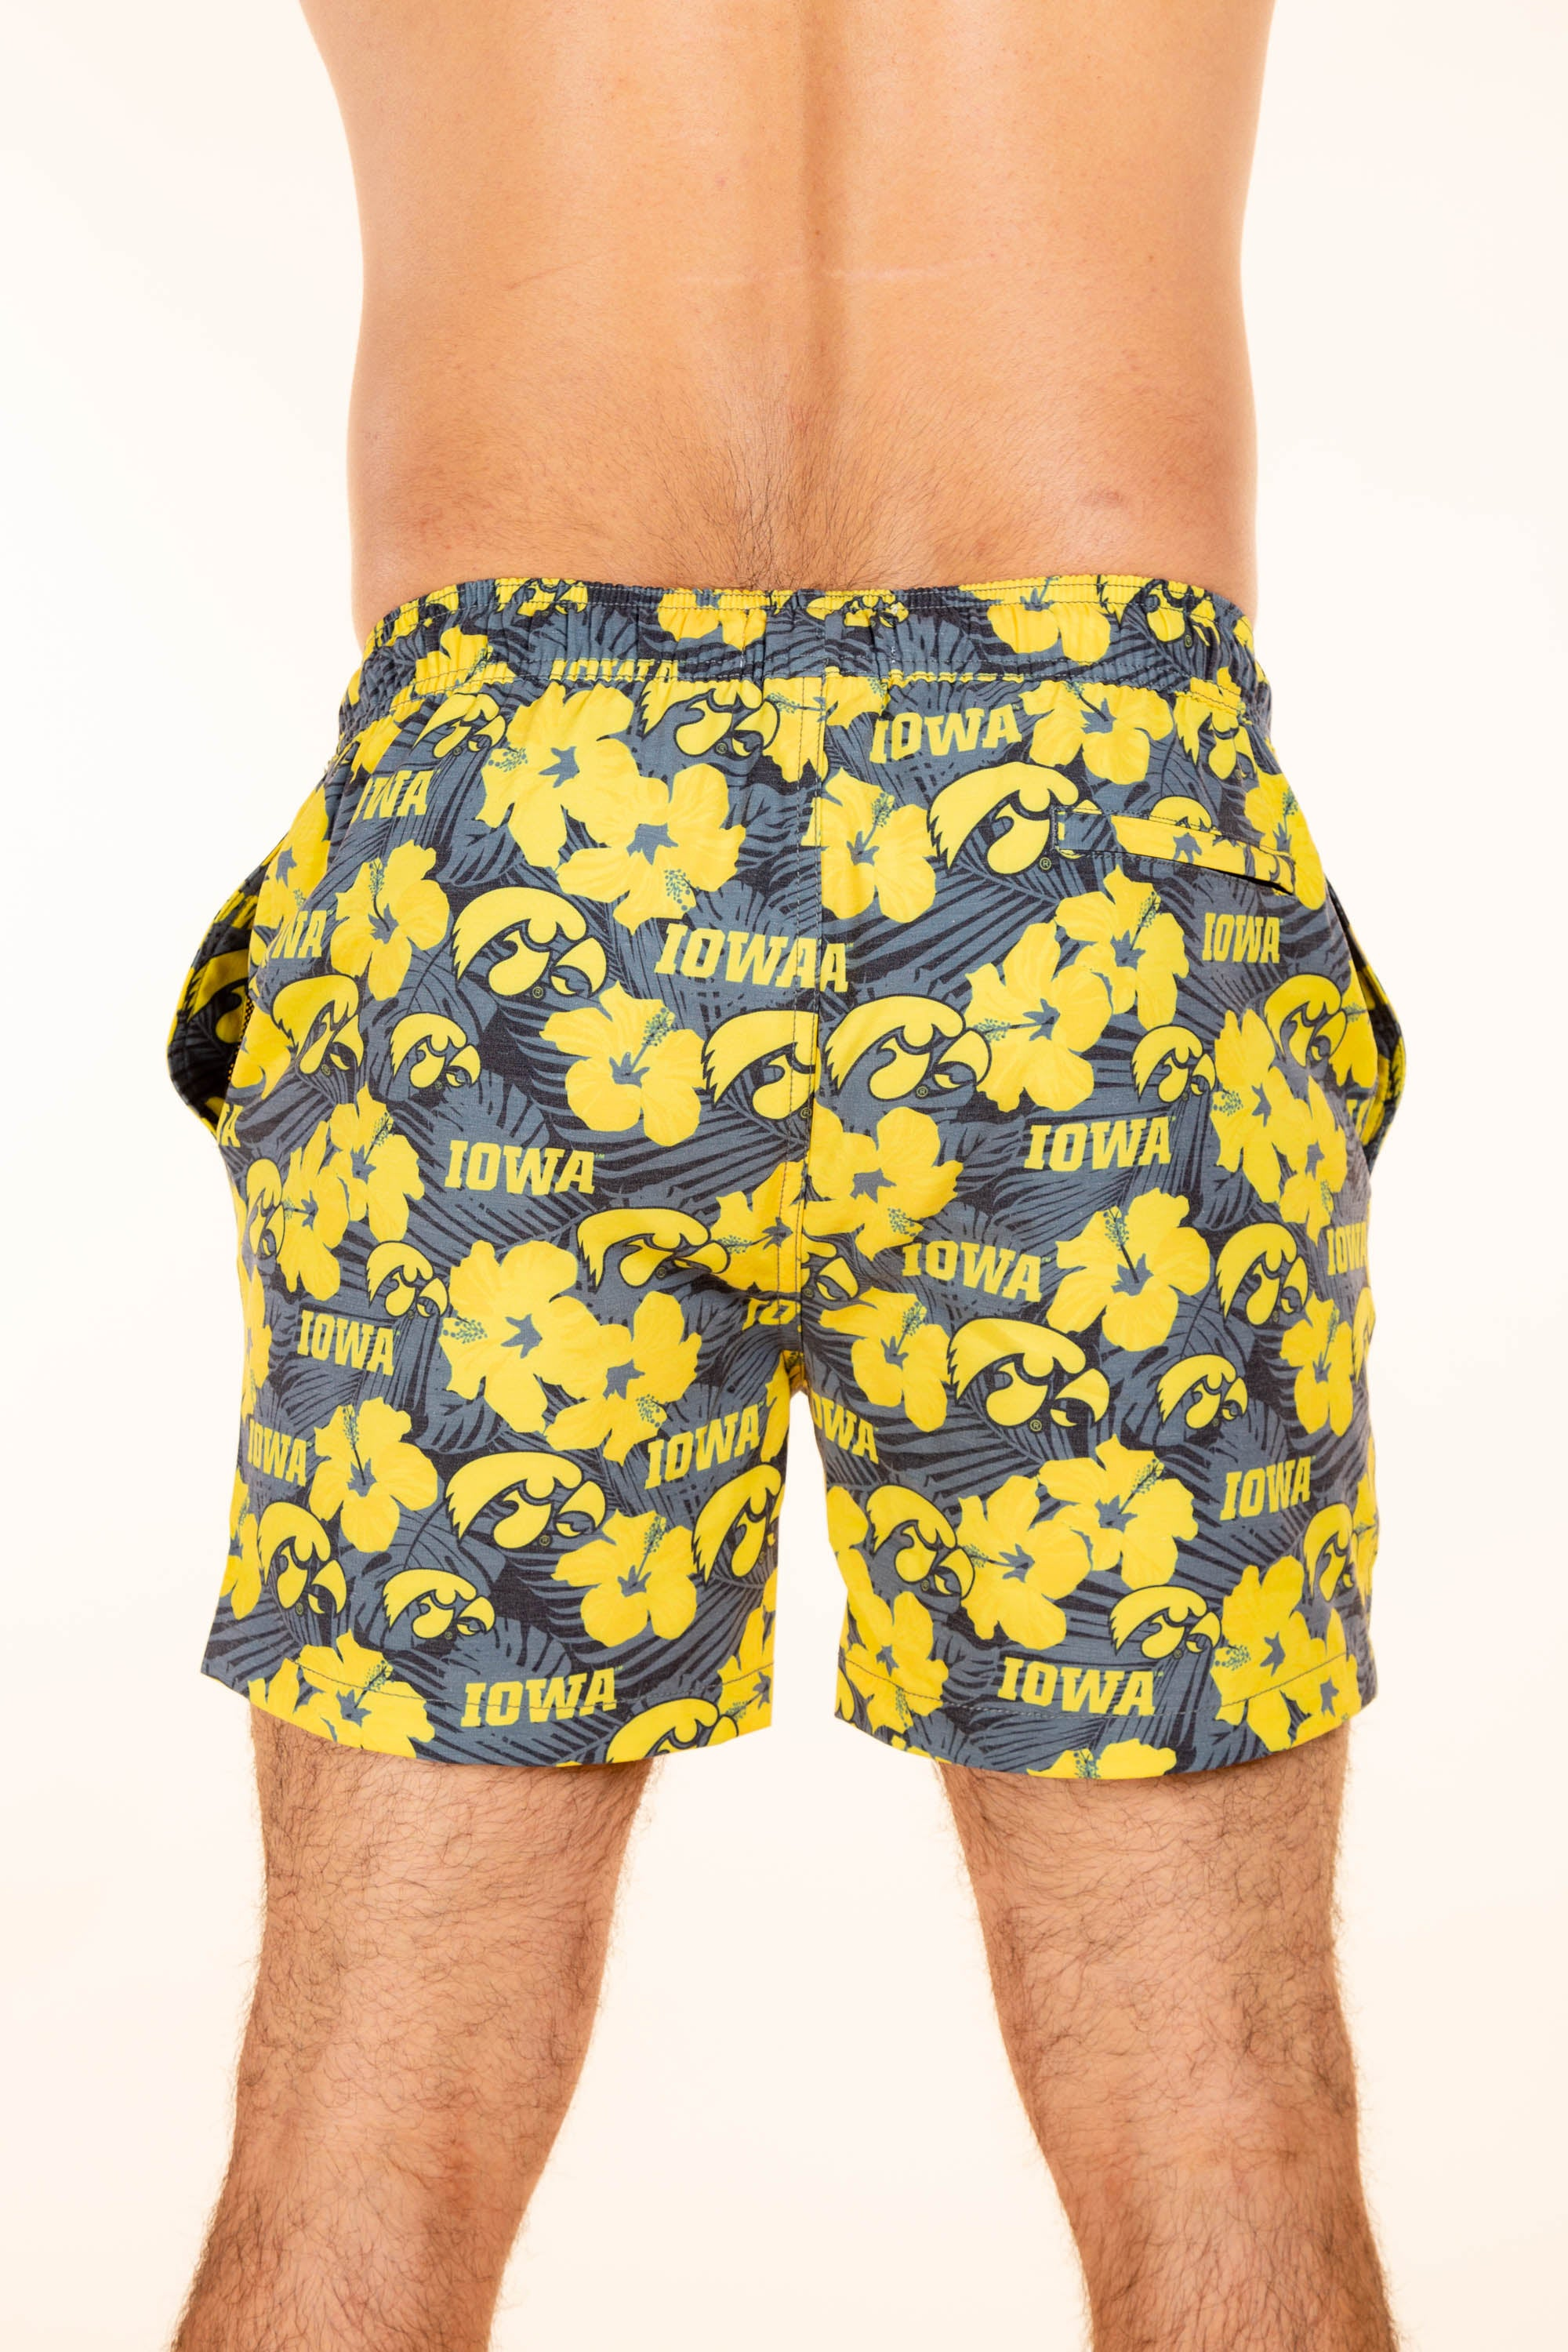 University of Iowa Men's Swimsuit